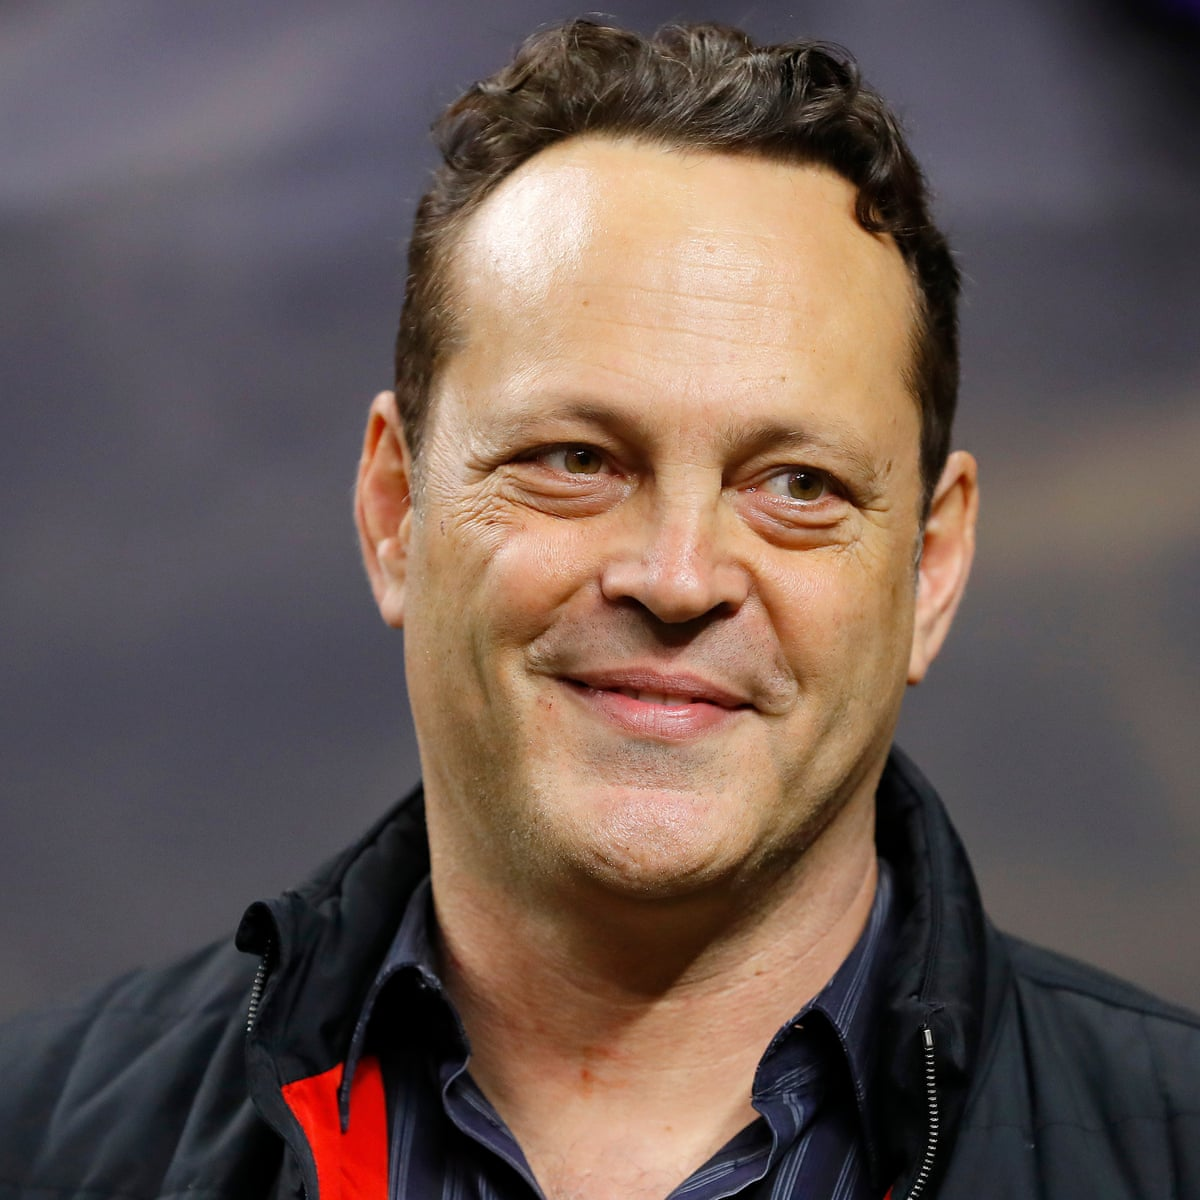 Surprised by Vince Vaughn's chumminess with Trump? You shouldn't be | Vince Vaughn | The Guardian